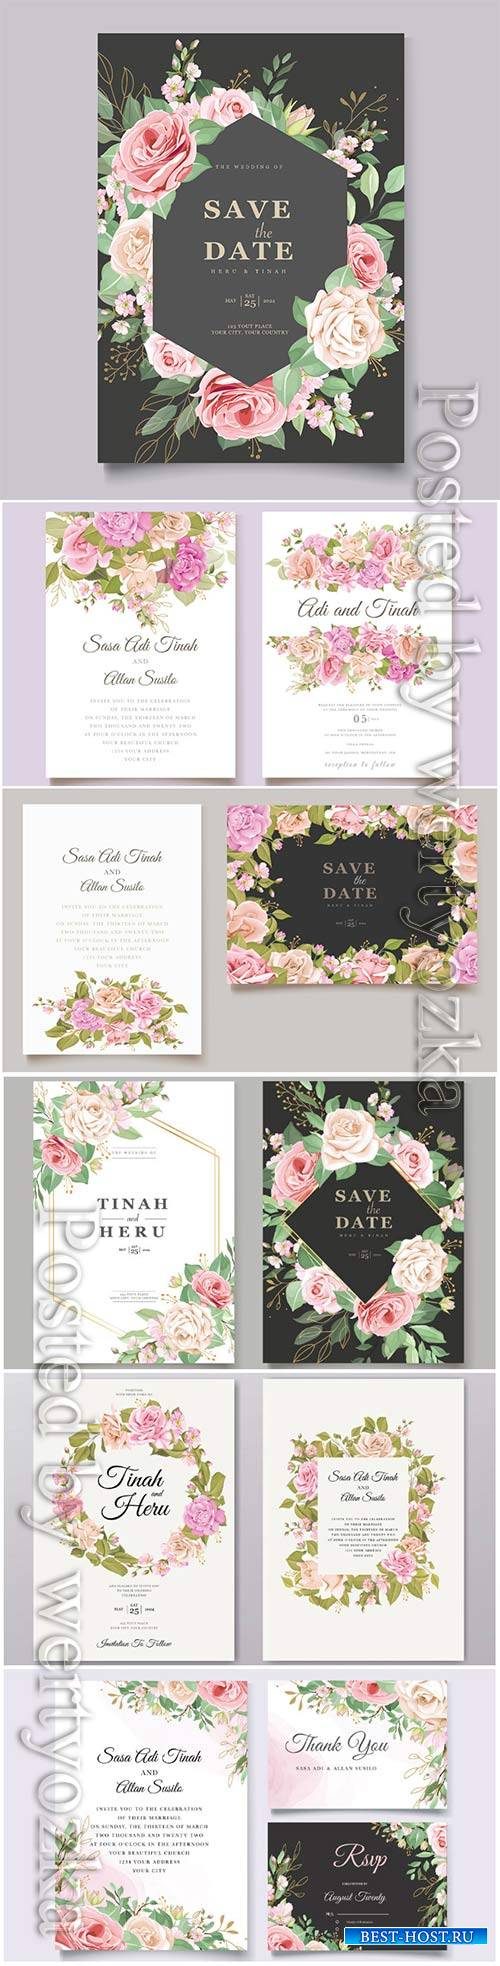 Wedding invitation cards with flowers in vector # 2